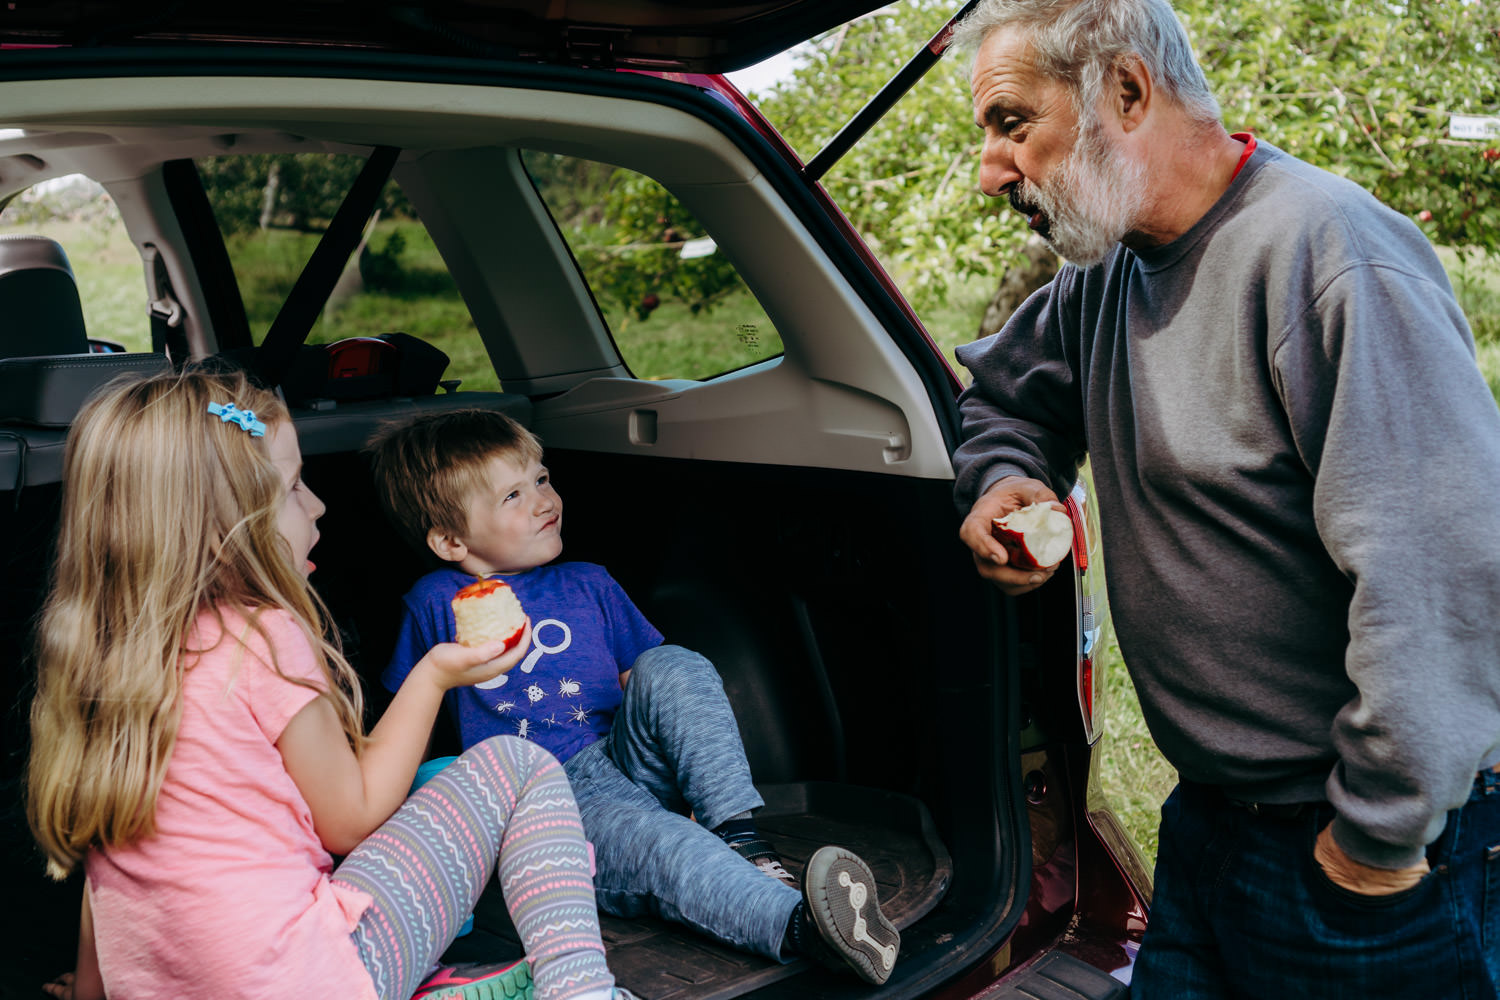 Two children sit in the back of a car and talk to their grandfather.